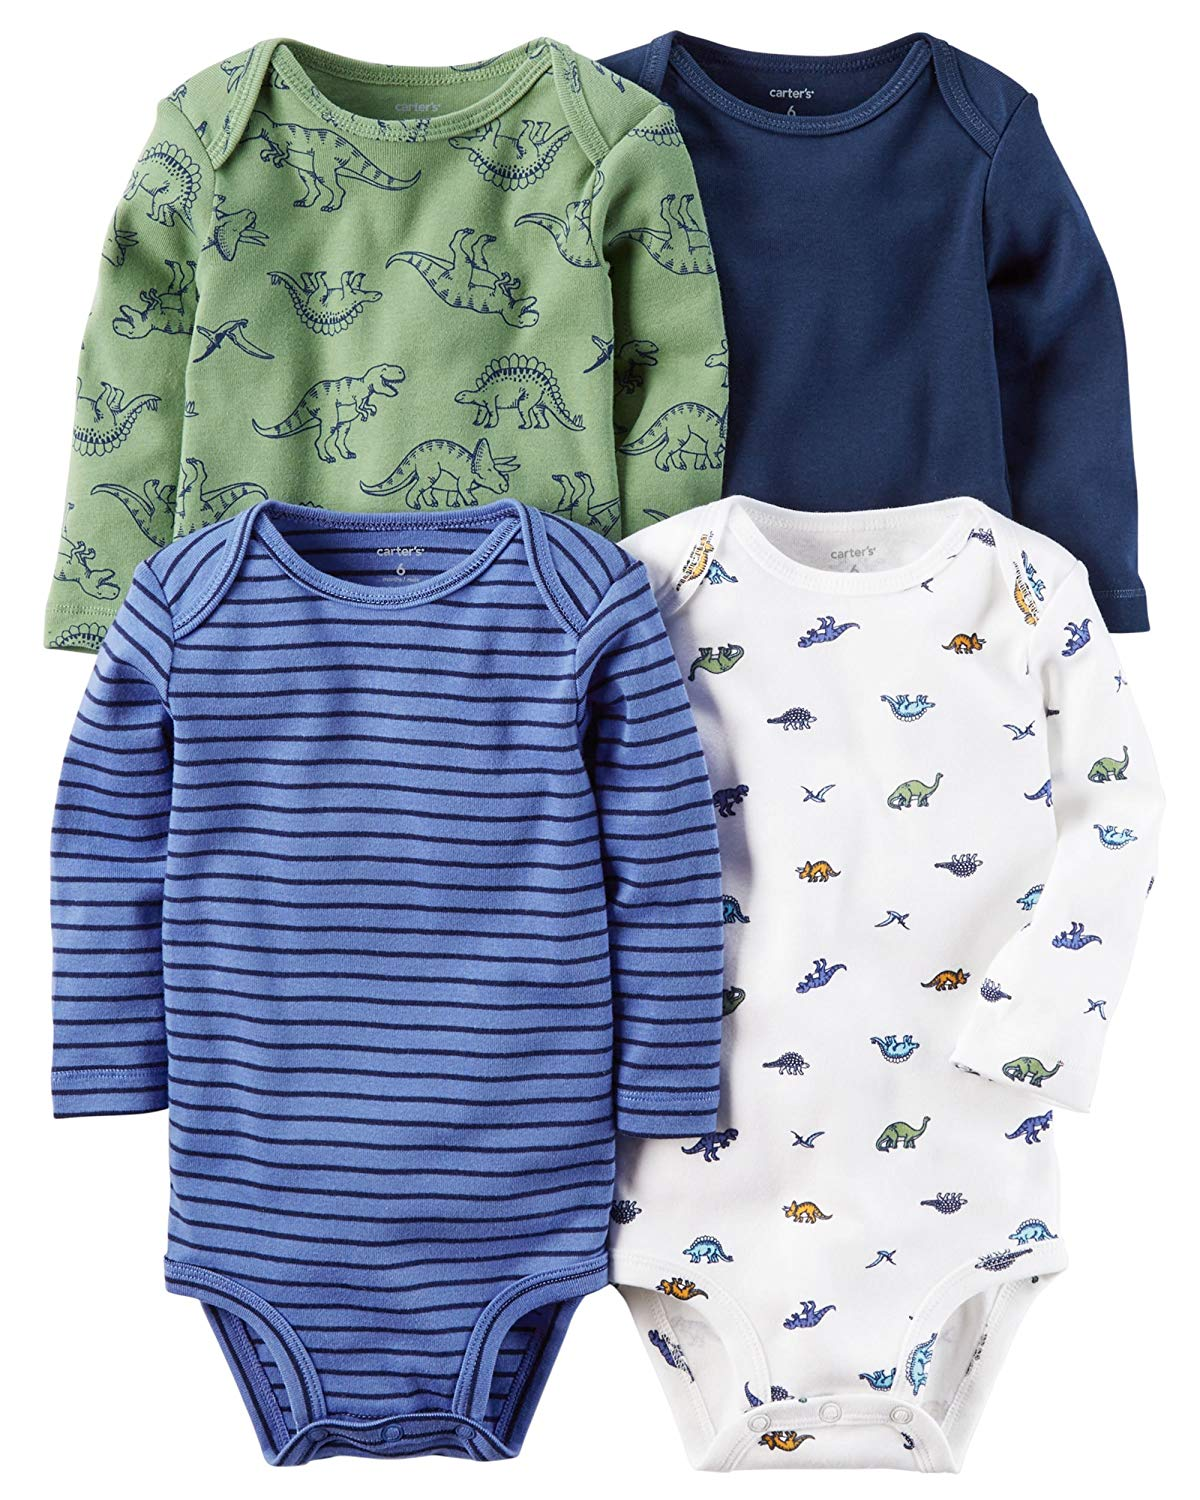 9fbb1f3e8a5 Get Quotations · William Carter Baby Boys  4 Pack Long Sleeve Bodysuits  Undershirt Set (Baby) Dinosaurs